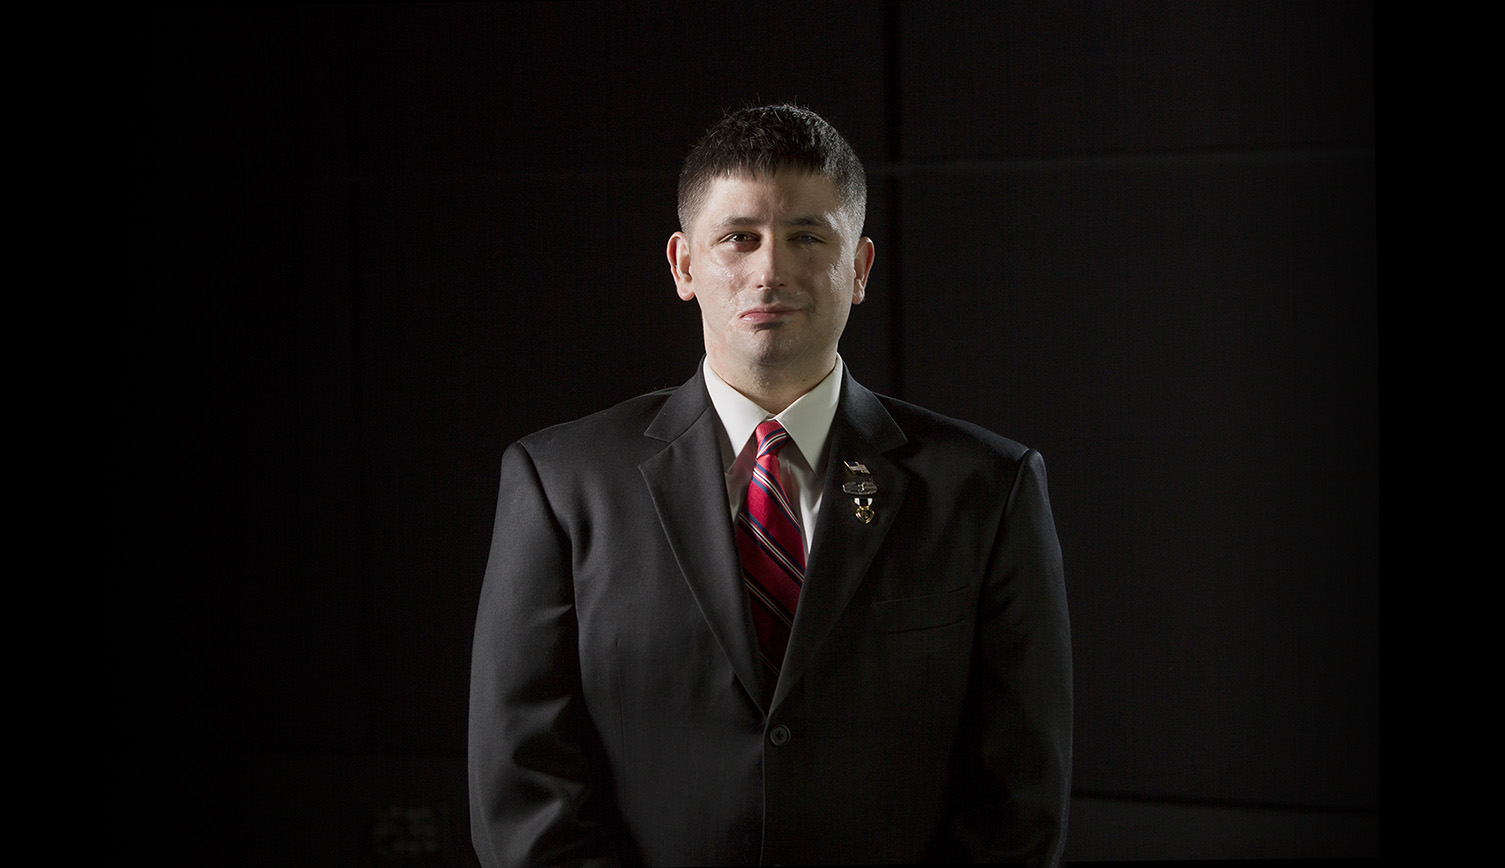 Douglas Szczepanski, a retired U.S. Army sergeant and 2011 alumnus, founder of the Miracle Soldier Inc. organization.